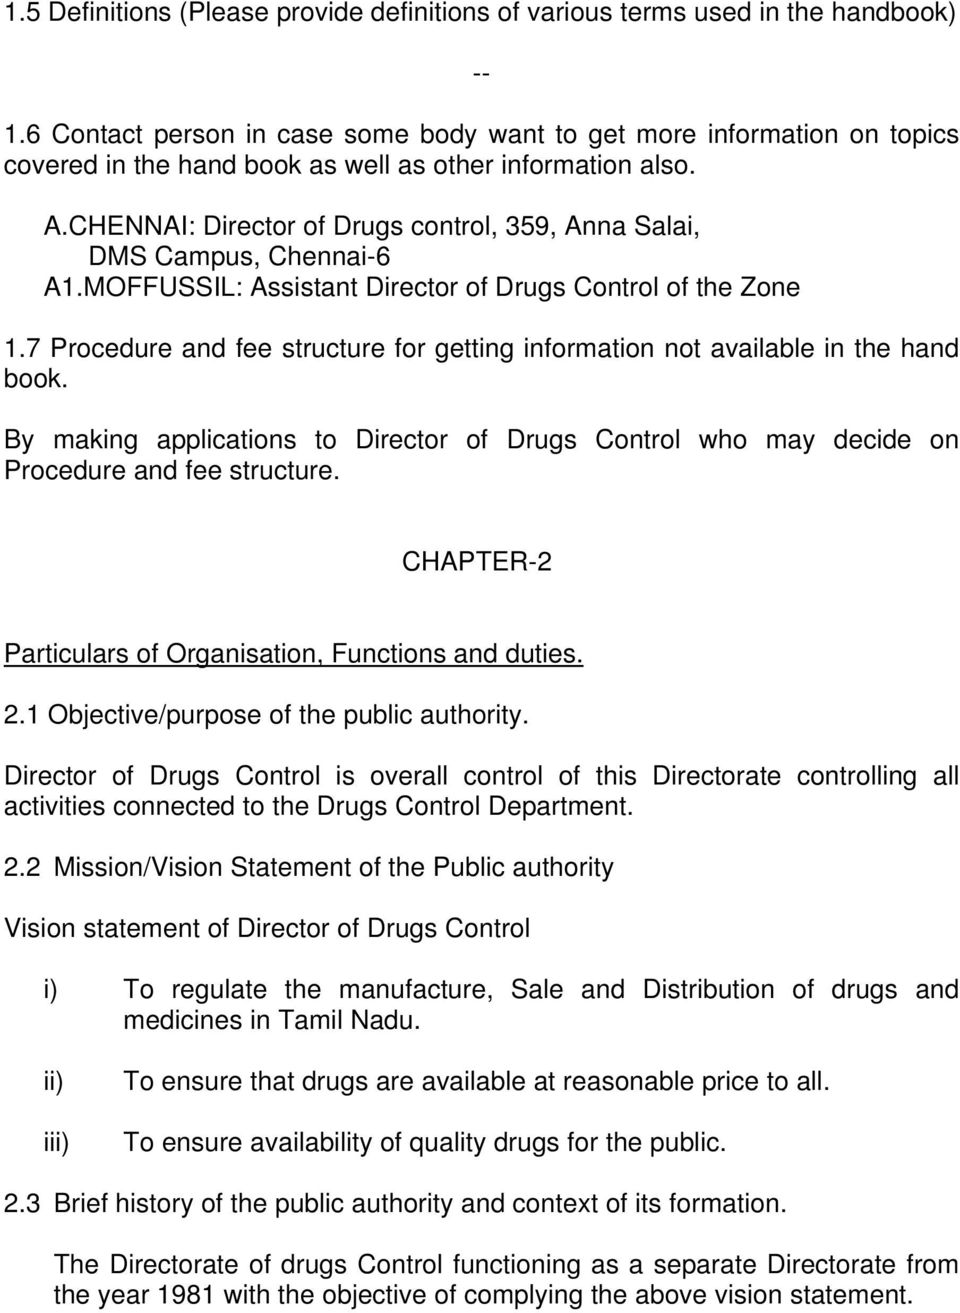 CHENNAI: Director of Drugs control, 359, Anna Salai, DMS Campus, Chennai-6 A1.MOFFUSSIL: Assistant Director of Drugs Control of the Zone 1.